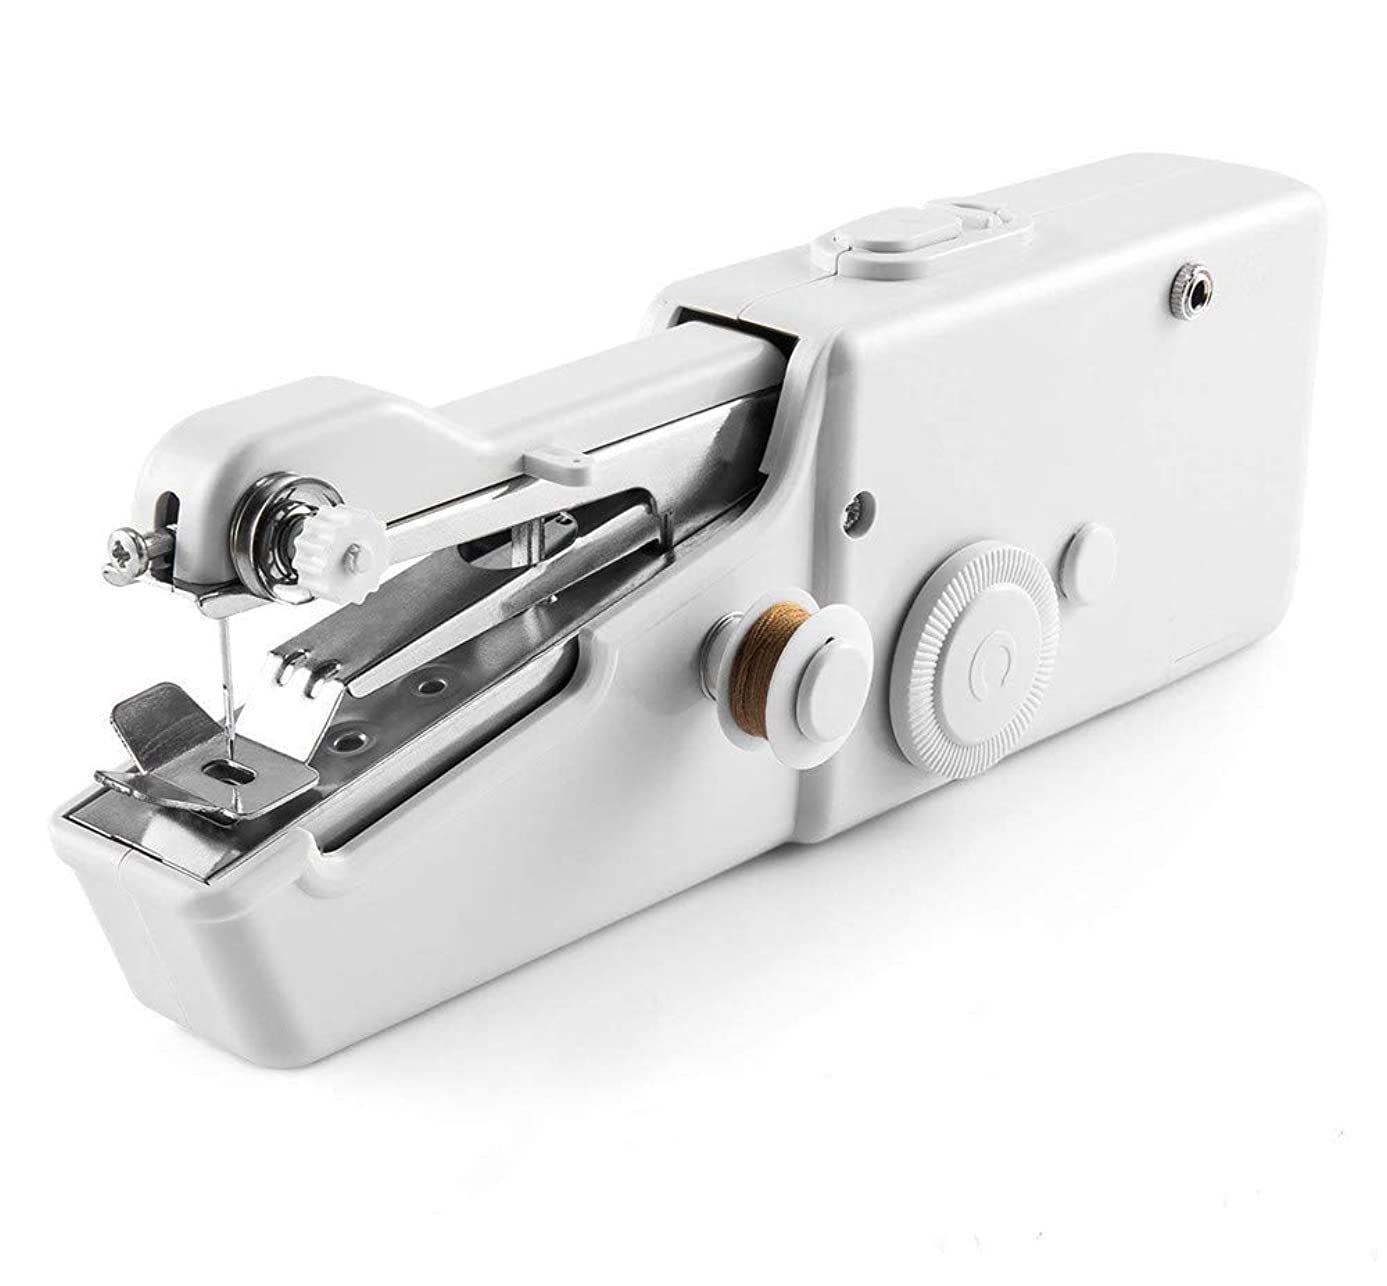 Unilive Handy Electric Tailor Stitch - Professional Handheld Portable Mini Electric Sewing Machine for Home Travel USE,Quick Handy Stitch Tool for Fabric,Clothing,Kids Cloth (White)